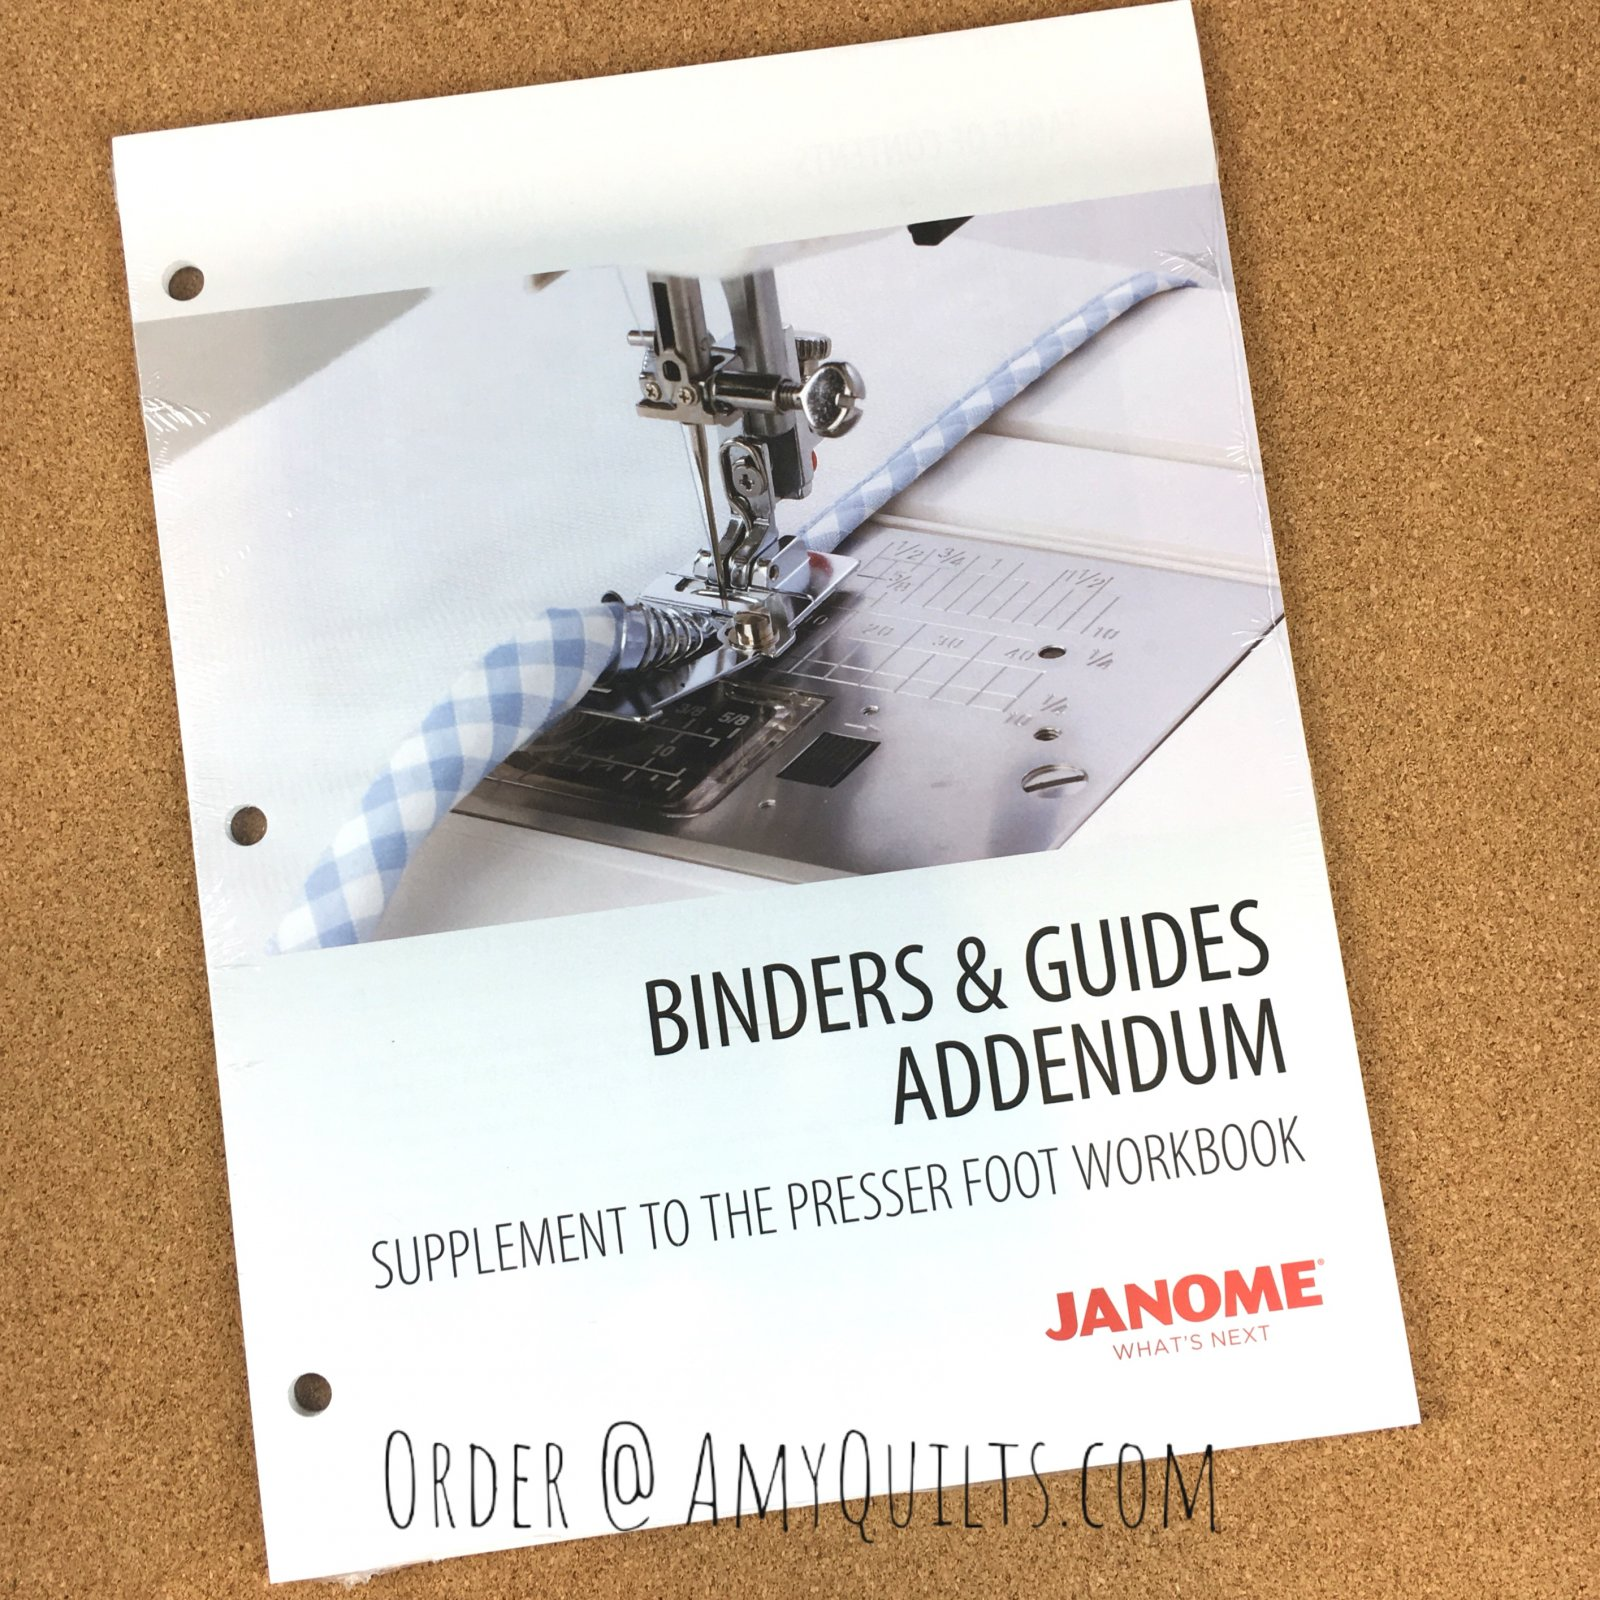 Janome Binders and Guides Addendum